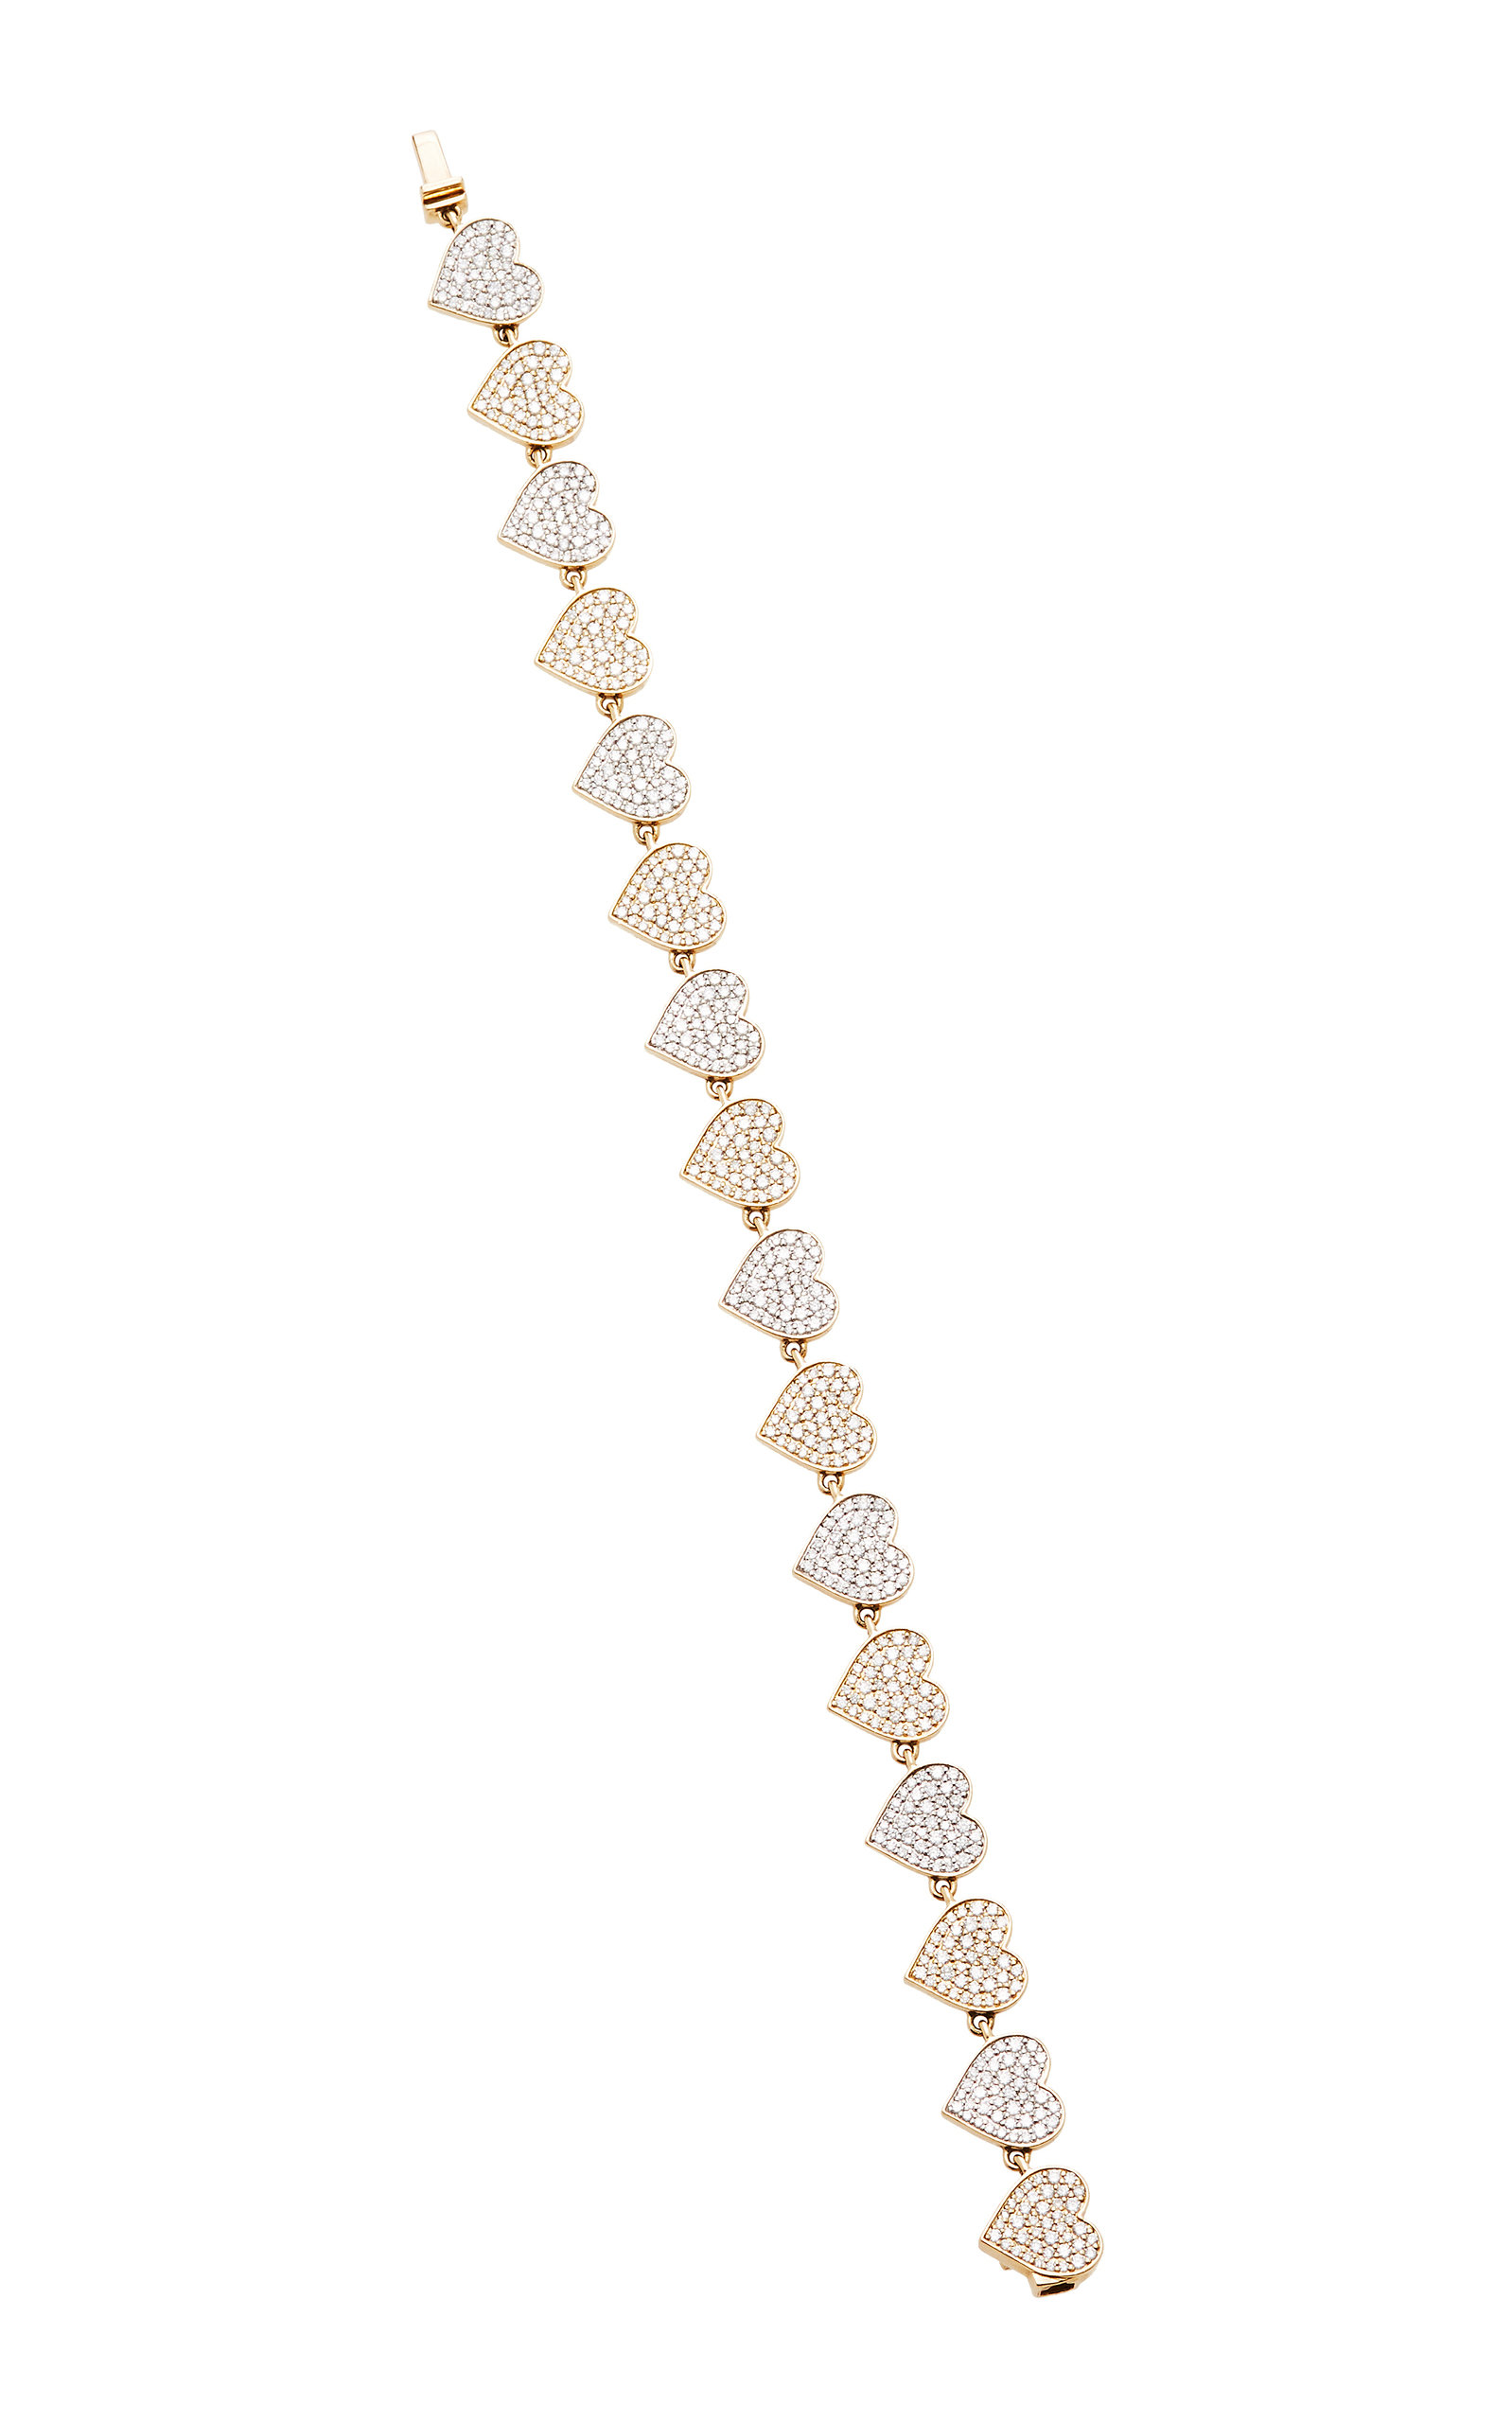 14 K Yellow Gold Double Heart Eternity Bracelet by Sydney Evan